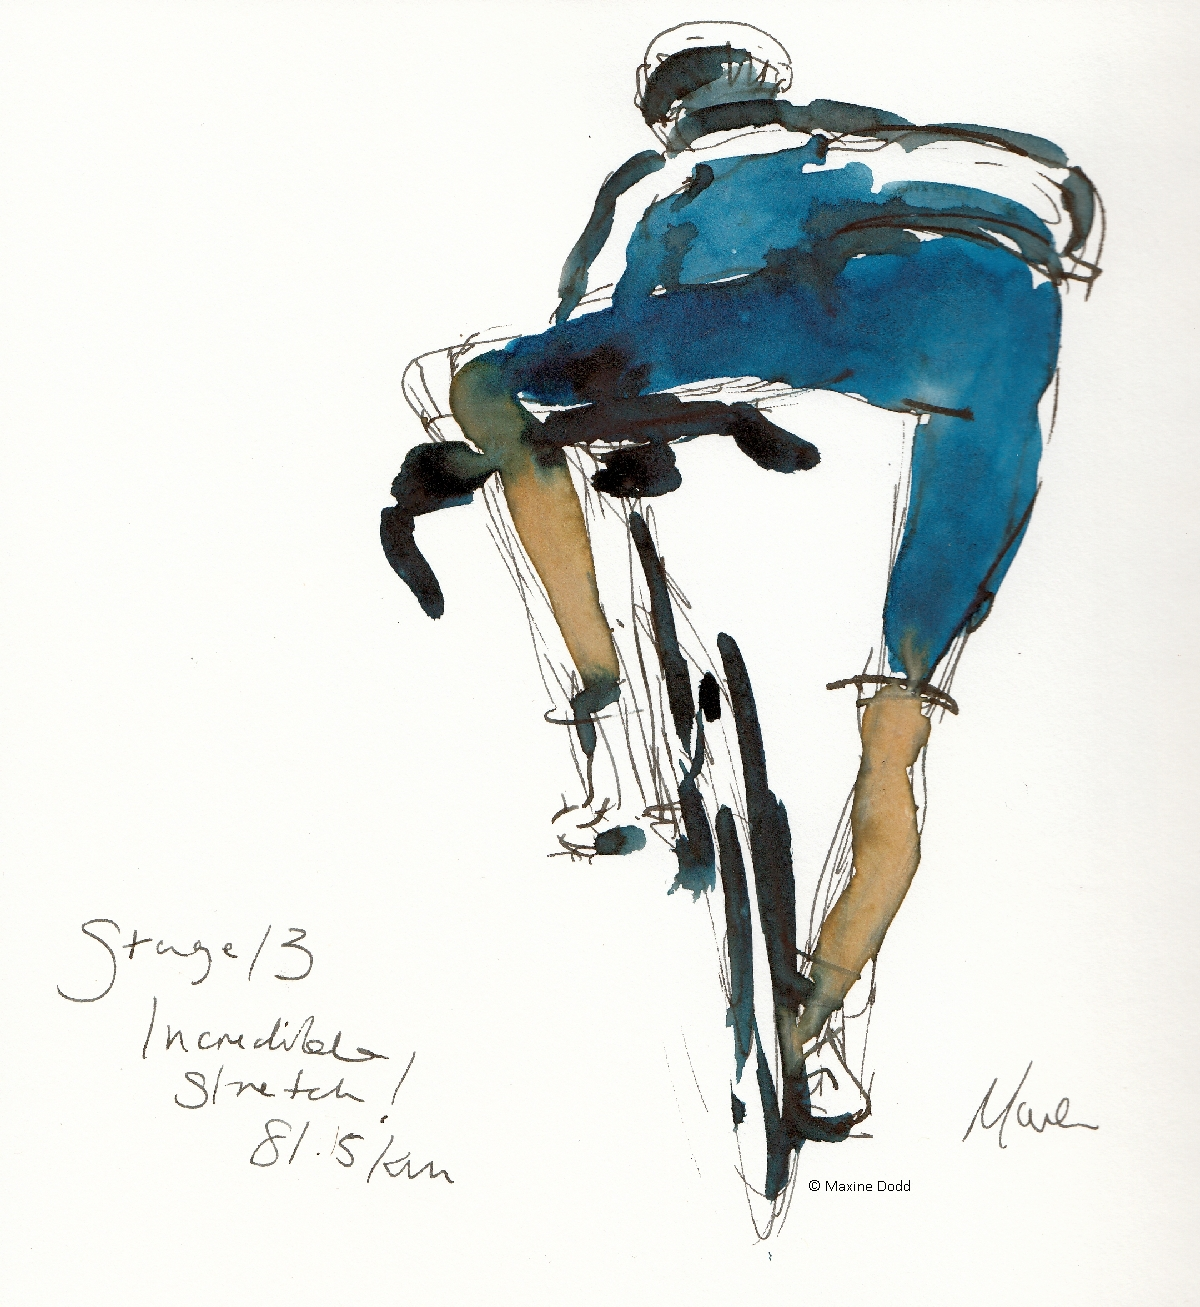 incredible stretch, watercolour, pen and ink, by Maxine Dodd